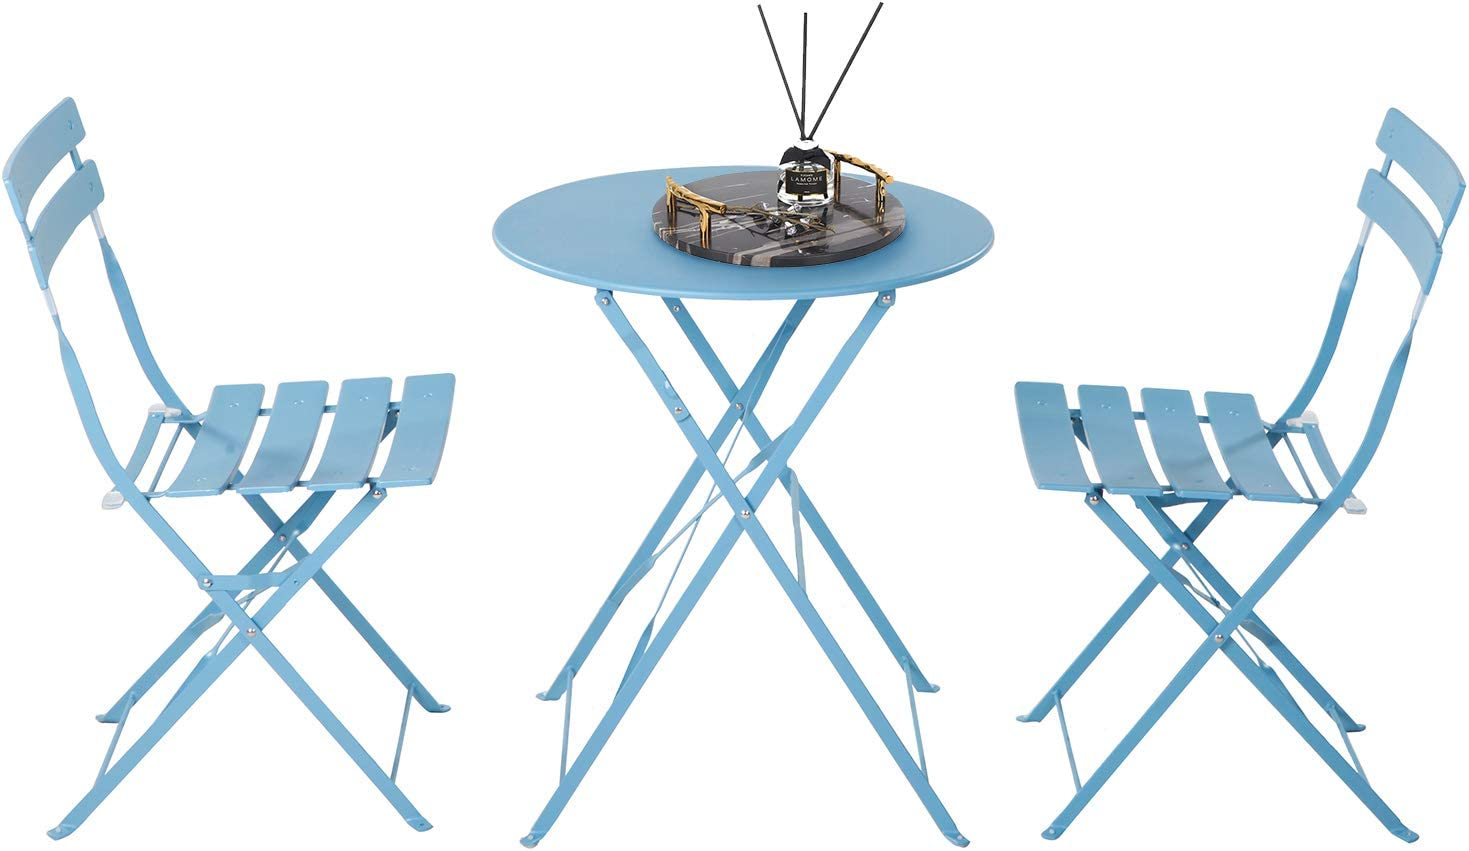 Buy Grand Patio 3pc Metal Folding Bistro Set 2 Chairs And 1 Table Weather Resistant Outdoor Indoor Conversation Set For Patio Yard Garden Blue Online In Indonesia B083tjwyvj